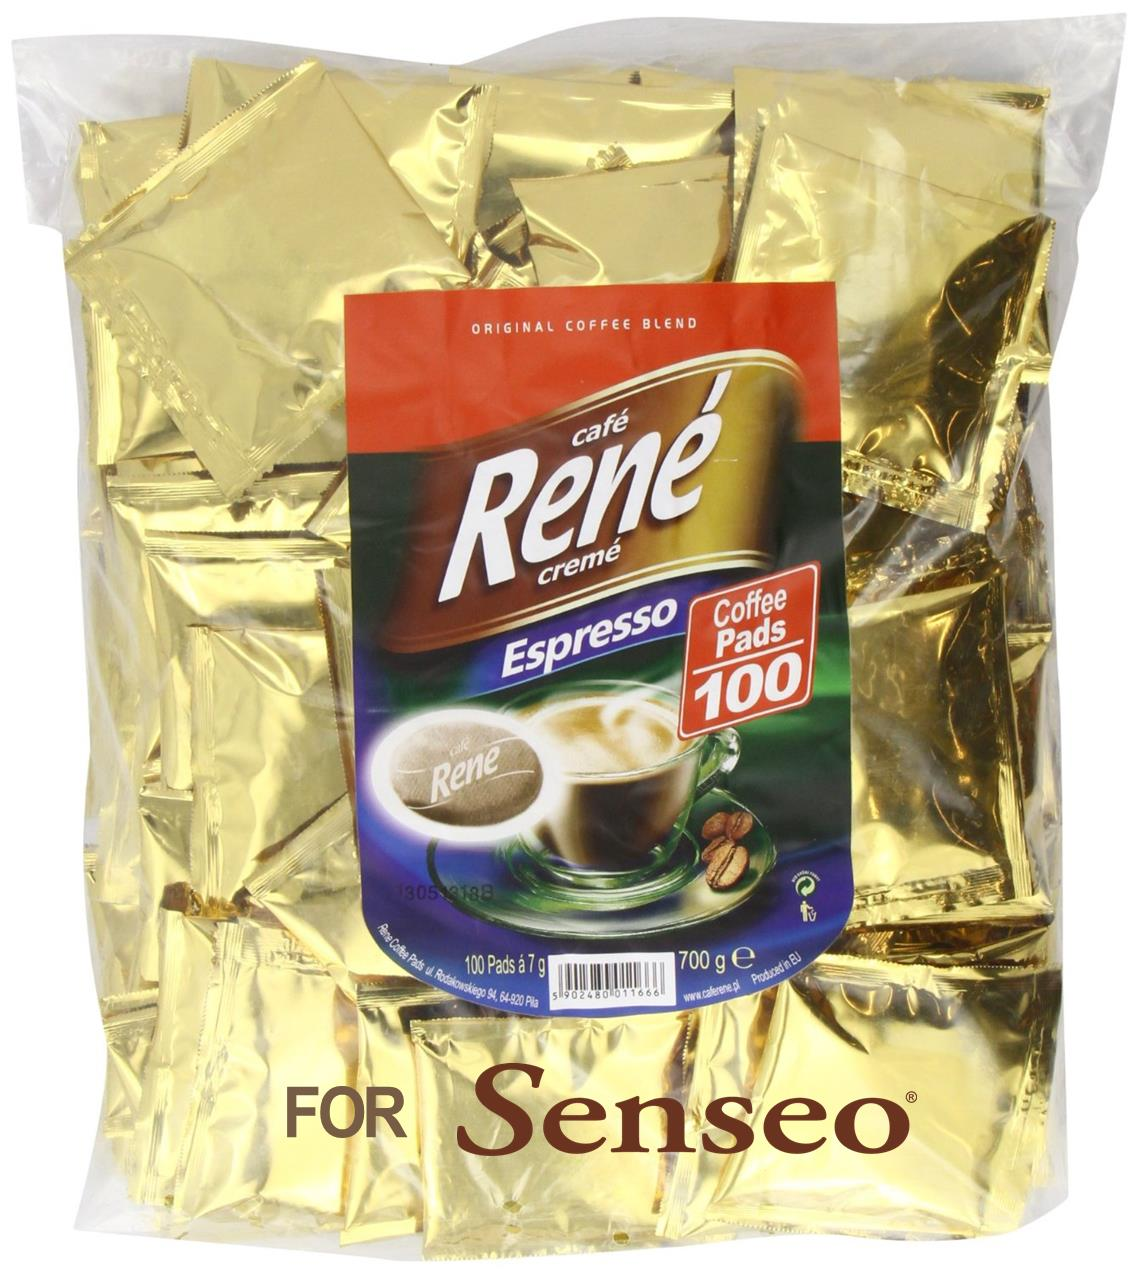 philips senseo 100 x caf rene cr me espresso coffee pads. Black Bedroom Furniture Sets. Home Design Ideas